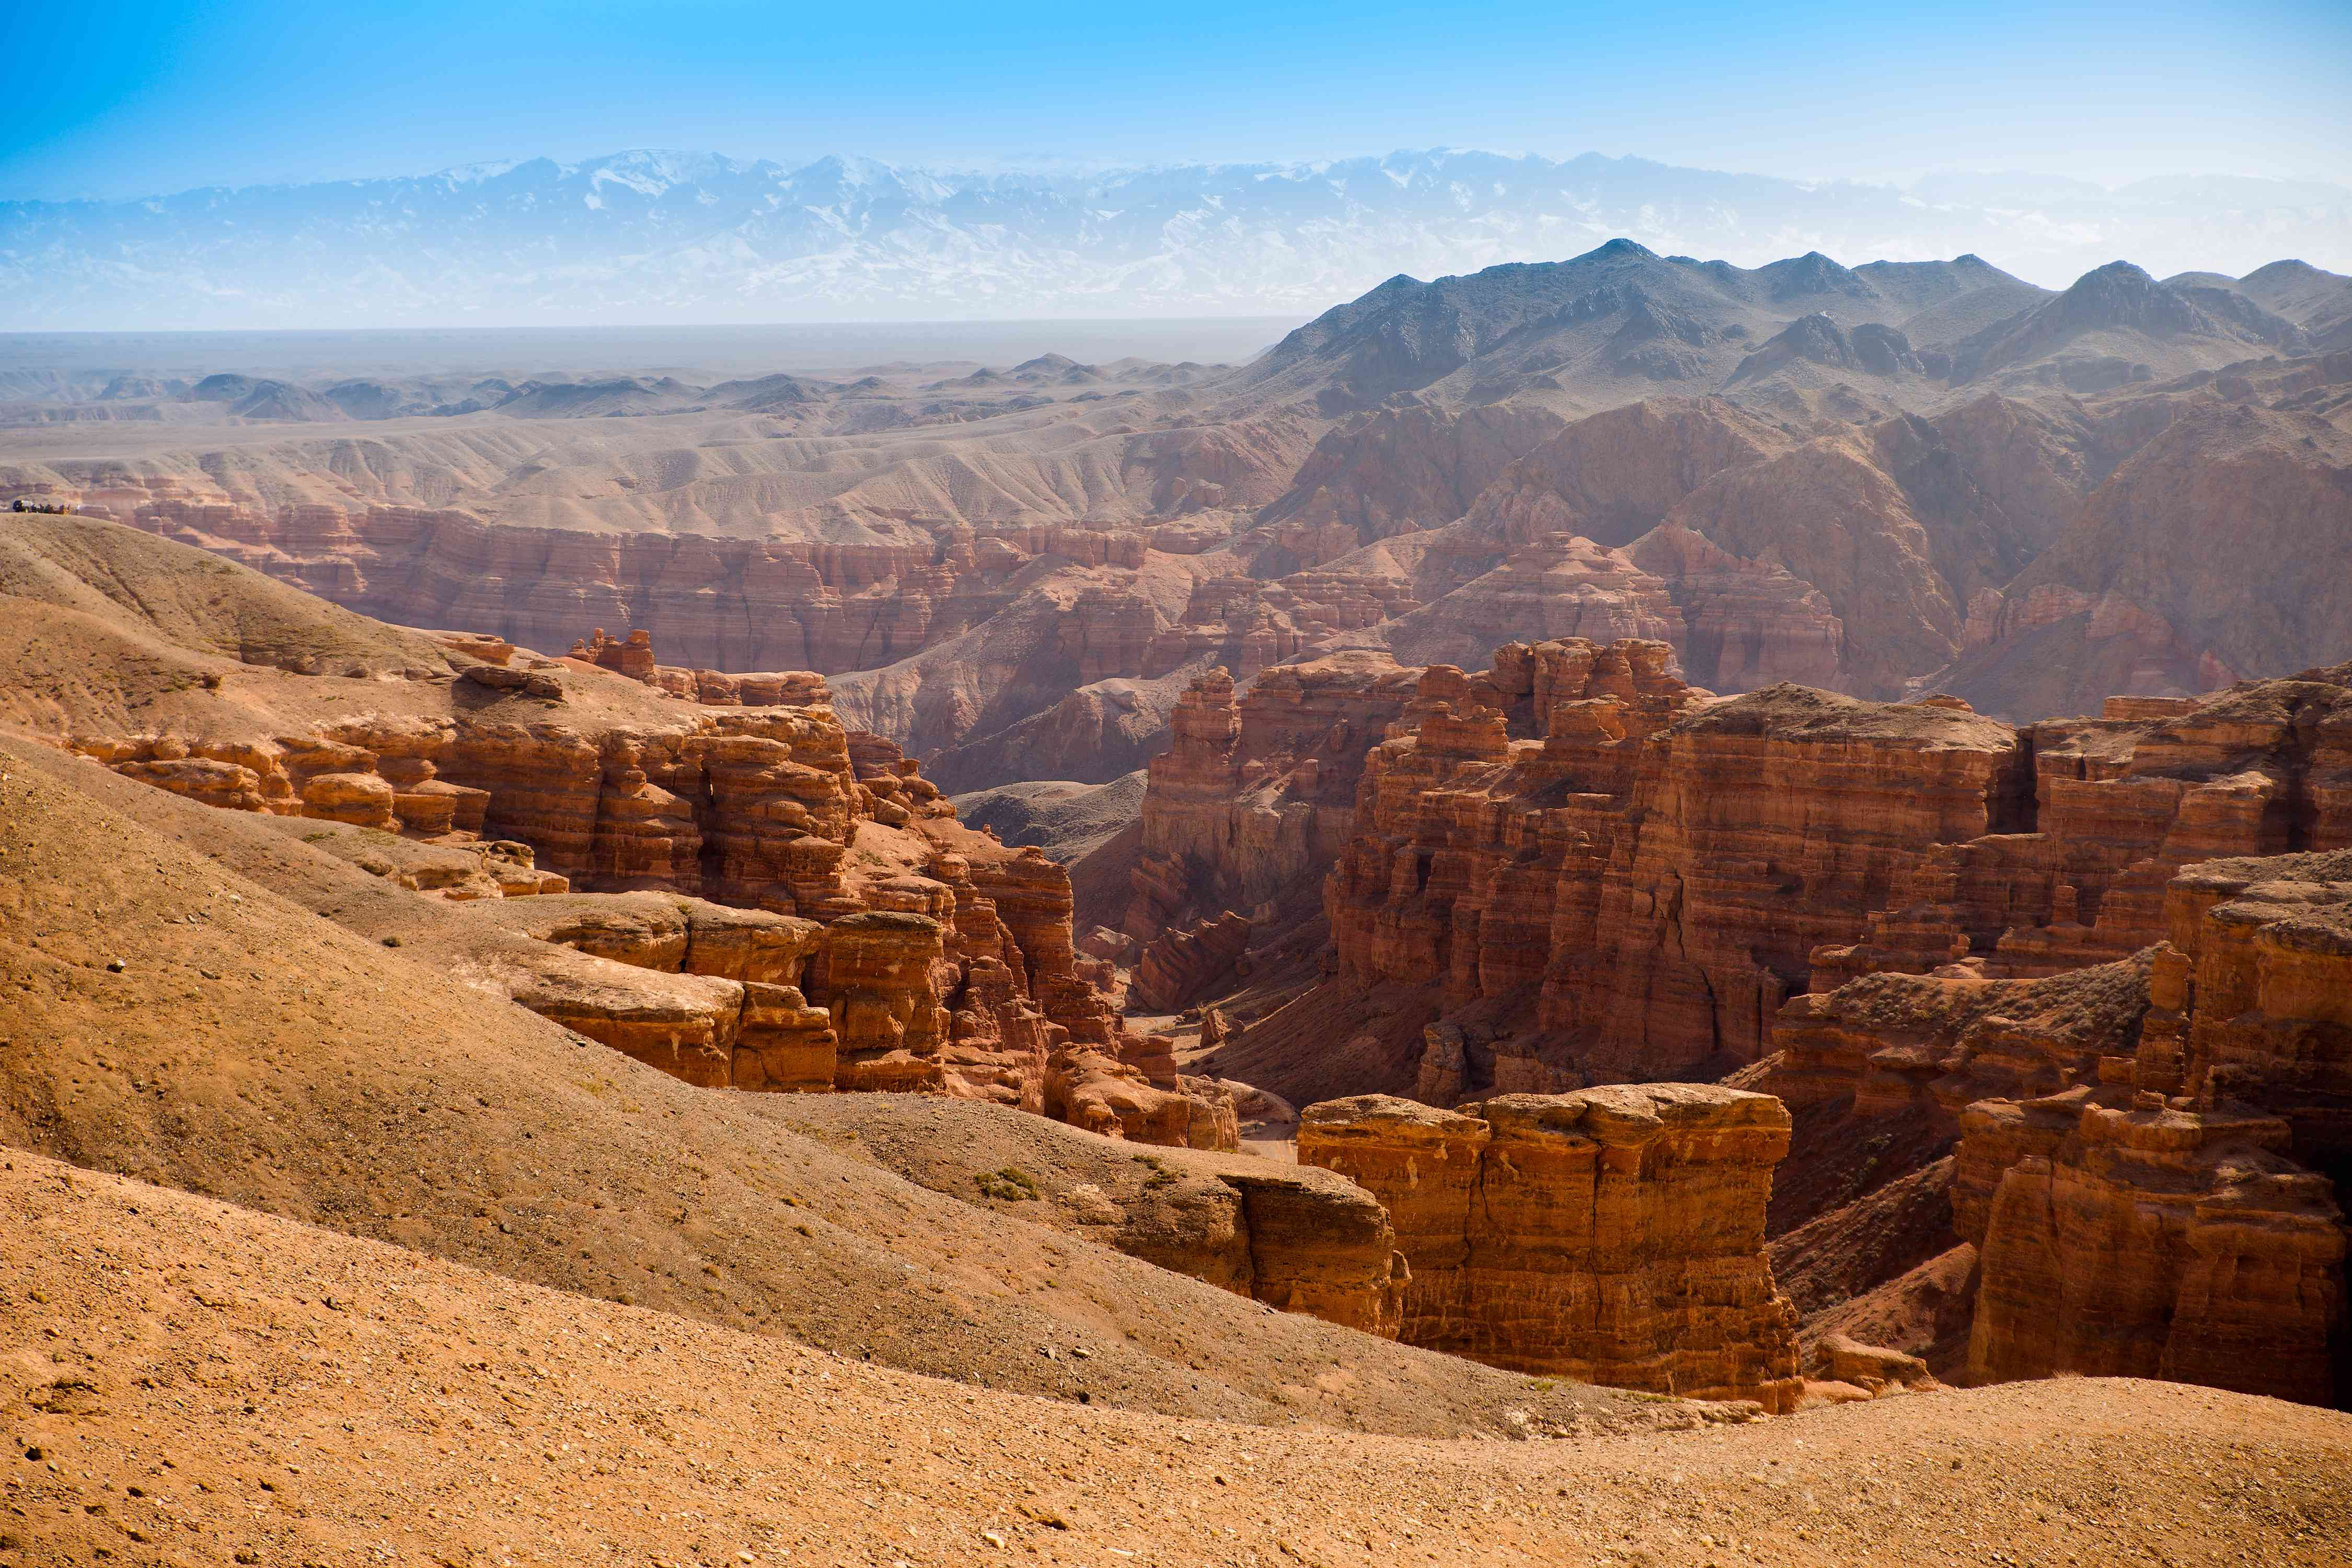 The stunning red vistas of Charyn Canyon in Kazakhstan